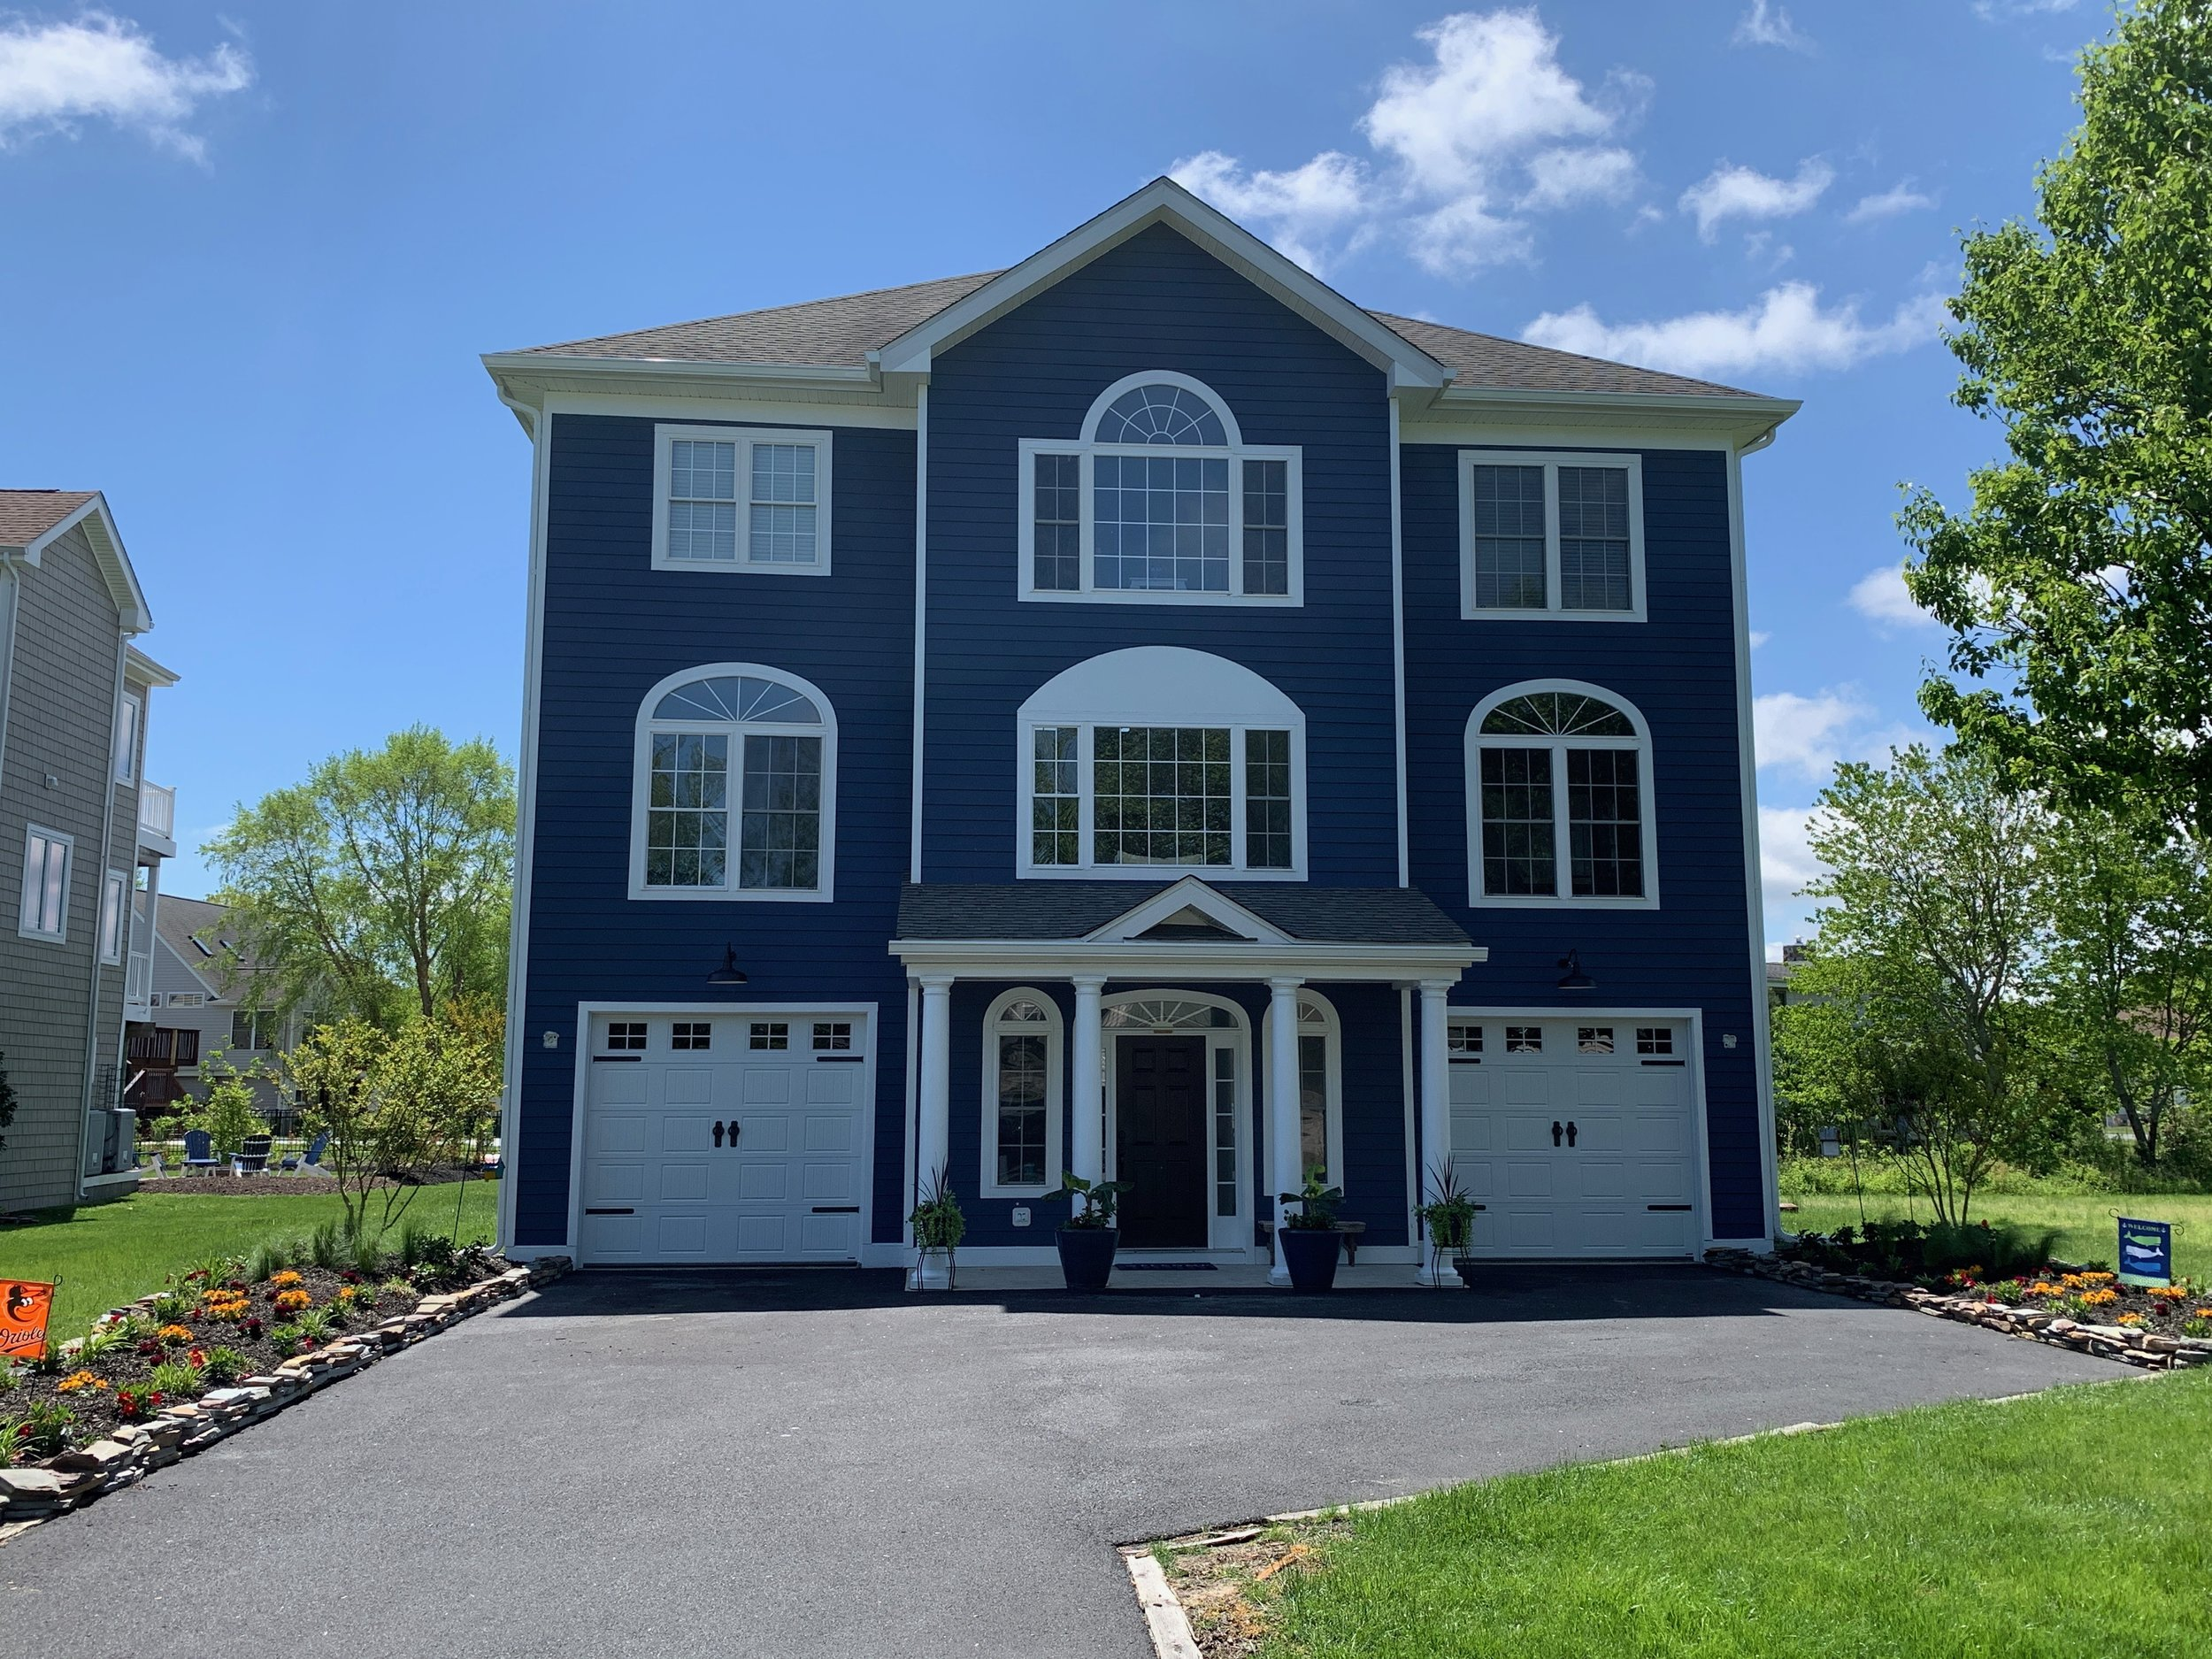 """""""Randy, thank you so much for adding the finishing touch to our dream home in Fenwick! Your team was professional, your pricing was more than fair, and they look absolutely incredible! Thank you for going out of your way to get the hardware we really wanted. We highly recommend Expert Overhead Doors!""""  -Steve and Kelli Wilkenson"""